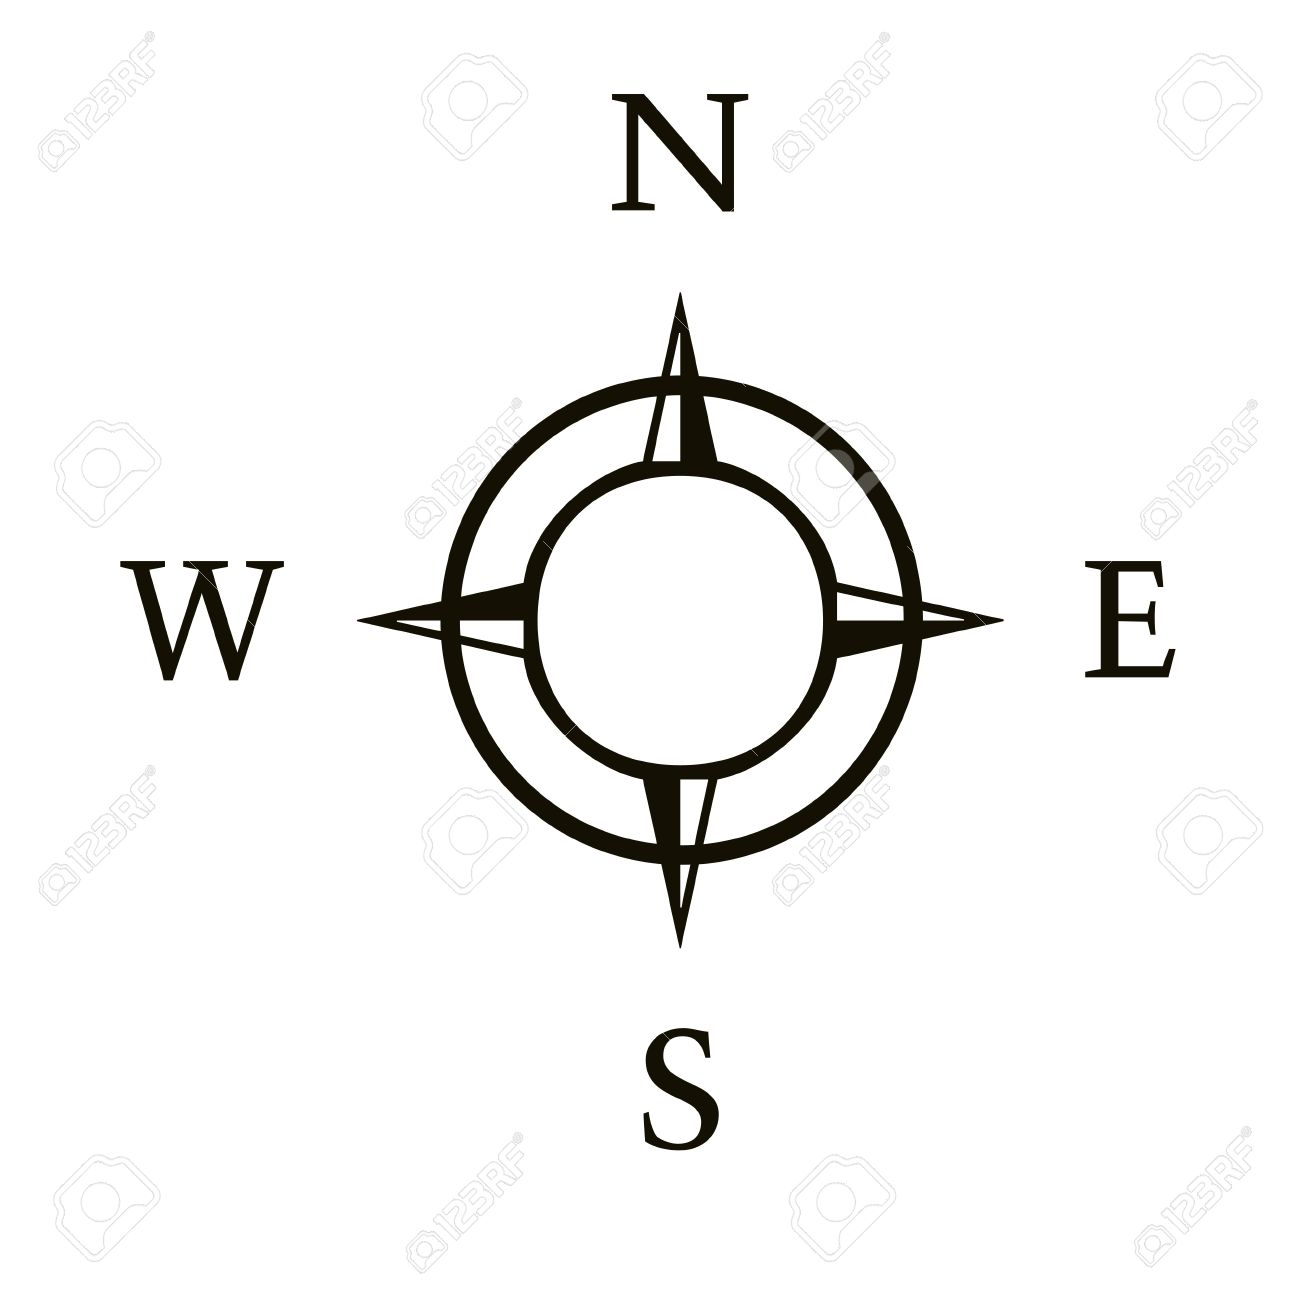 compass illustration with north south east west stock photo picture